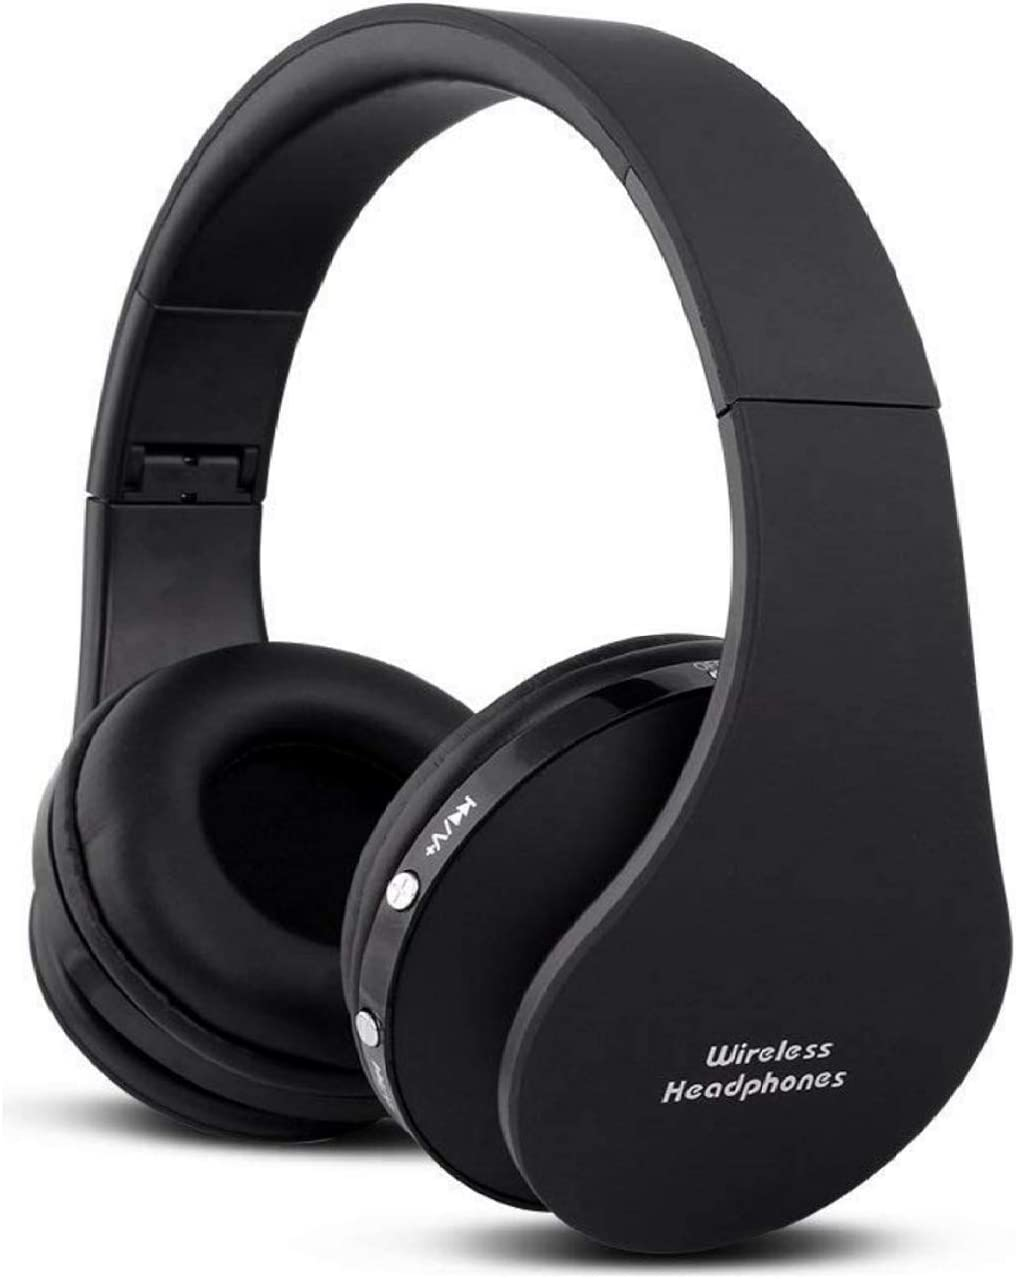 Wireless Foldable Headphones, Bluetooth Over-Ear Stereo Earbuds Wired Headsets with Built-in Microphone with 3.5mm Jack by Mikicat  (Black)